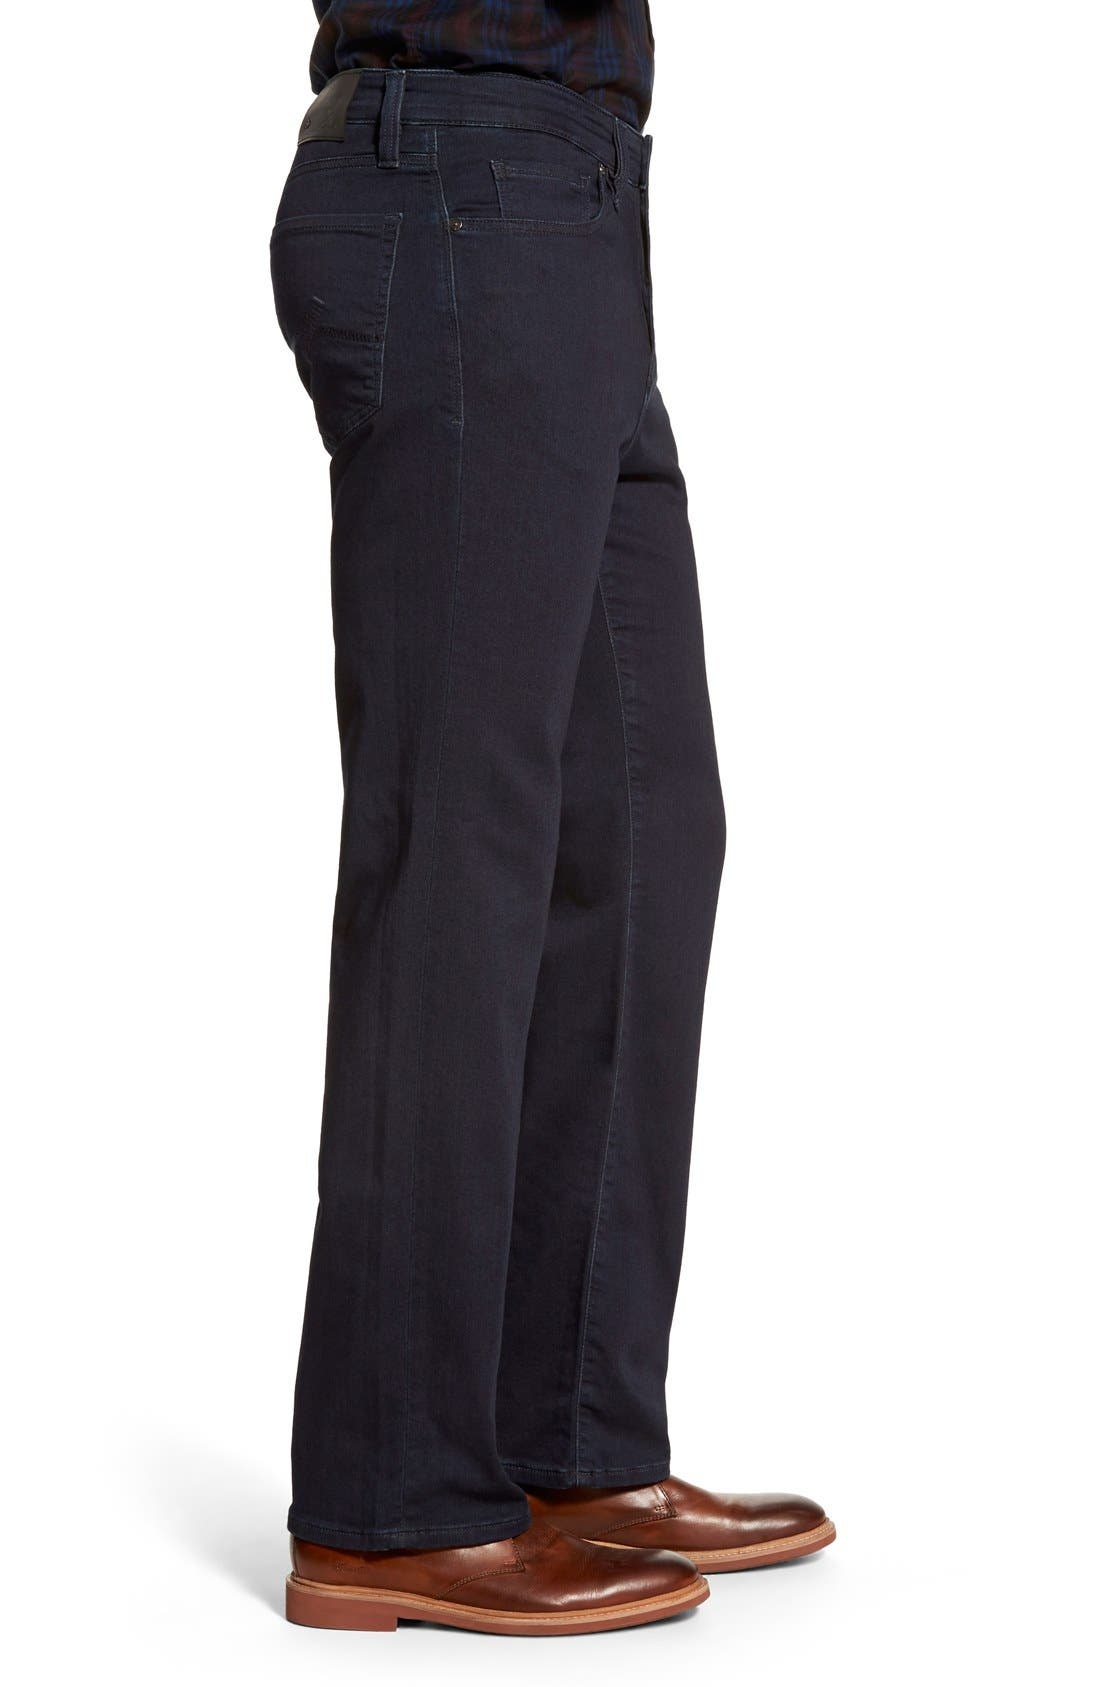 'Charisma' Relaxed Fit Jeans,                             Alternate thumbnail 2, color,                             RINSE SPORTY